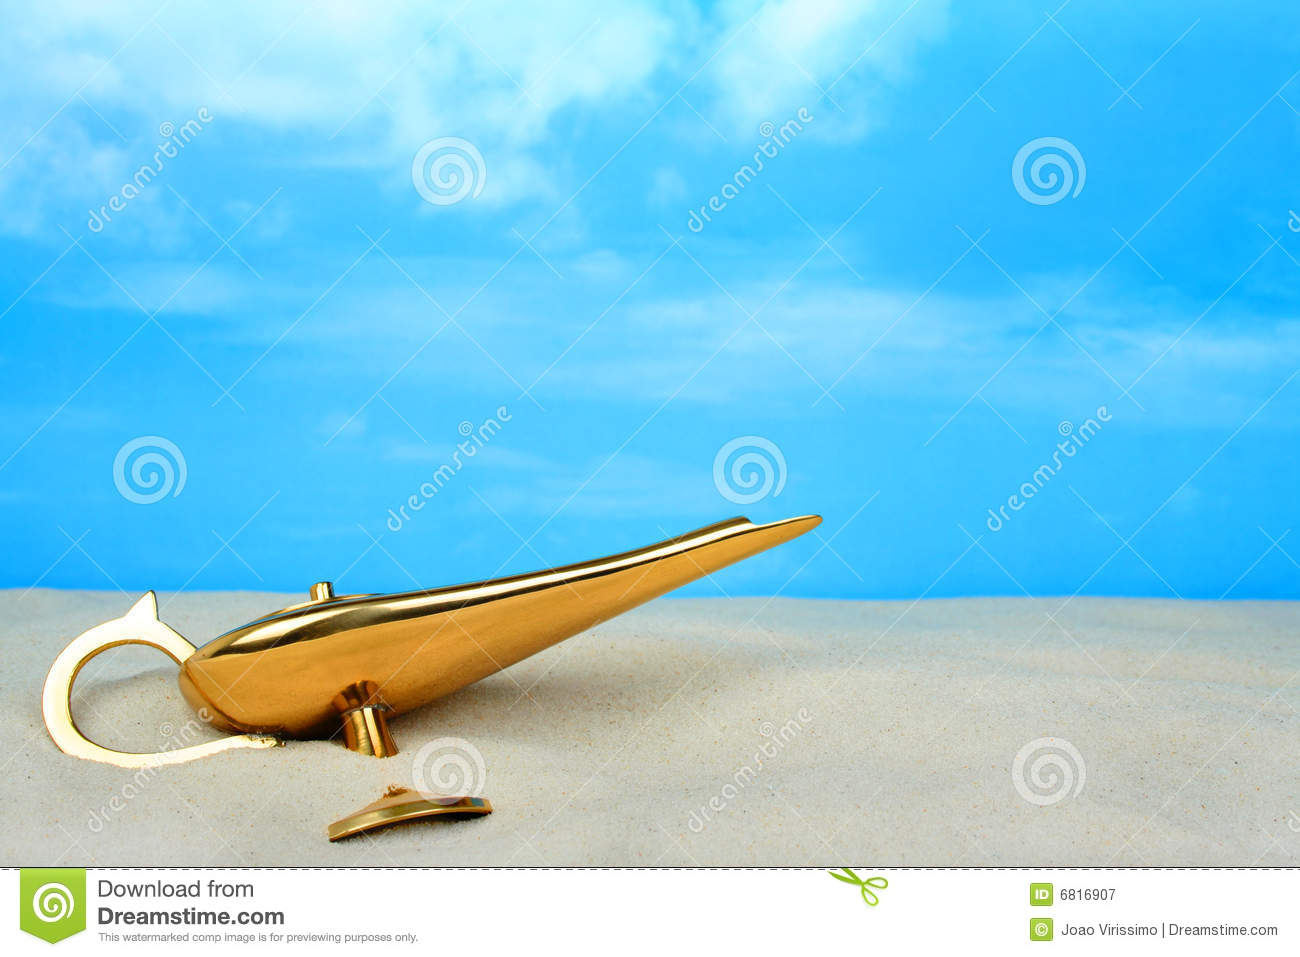 Genie lamp stock photos pictures royalty free genie - Royalty Free Stock Photo Buried Concept Desert Genie Lamp